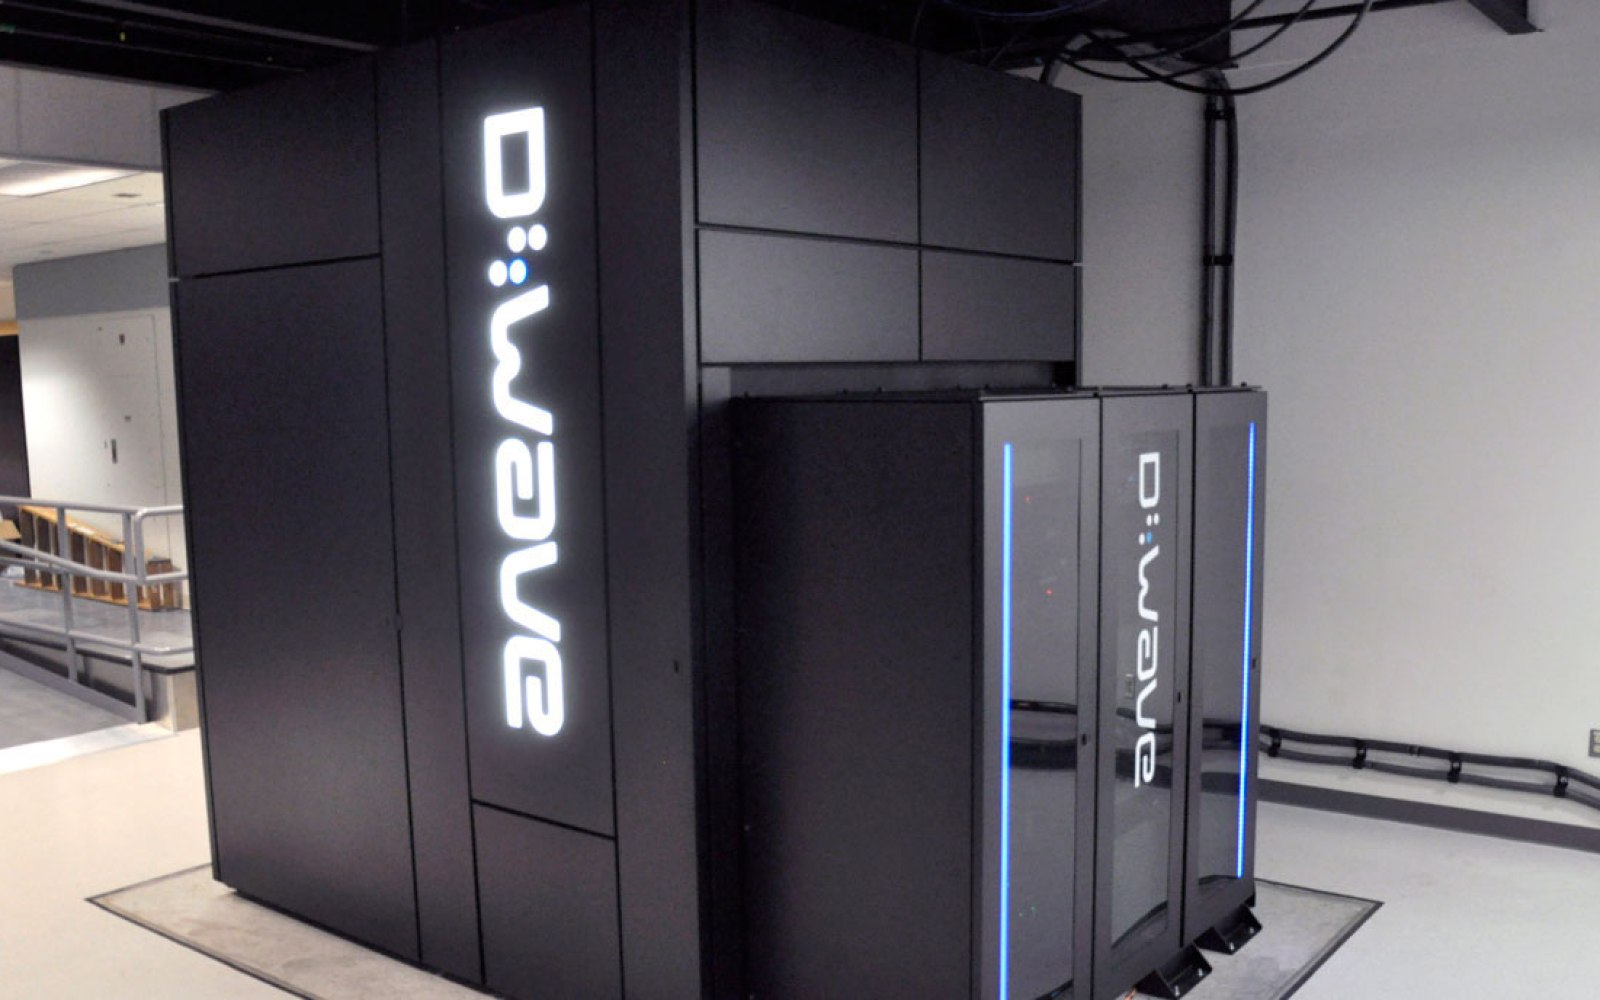 Google reportedly planning a 'watershed' quantum computing announcement for December 8